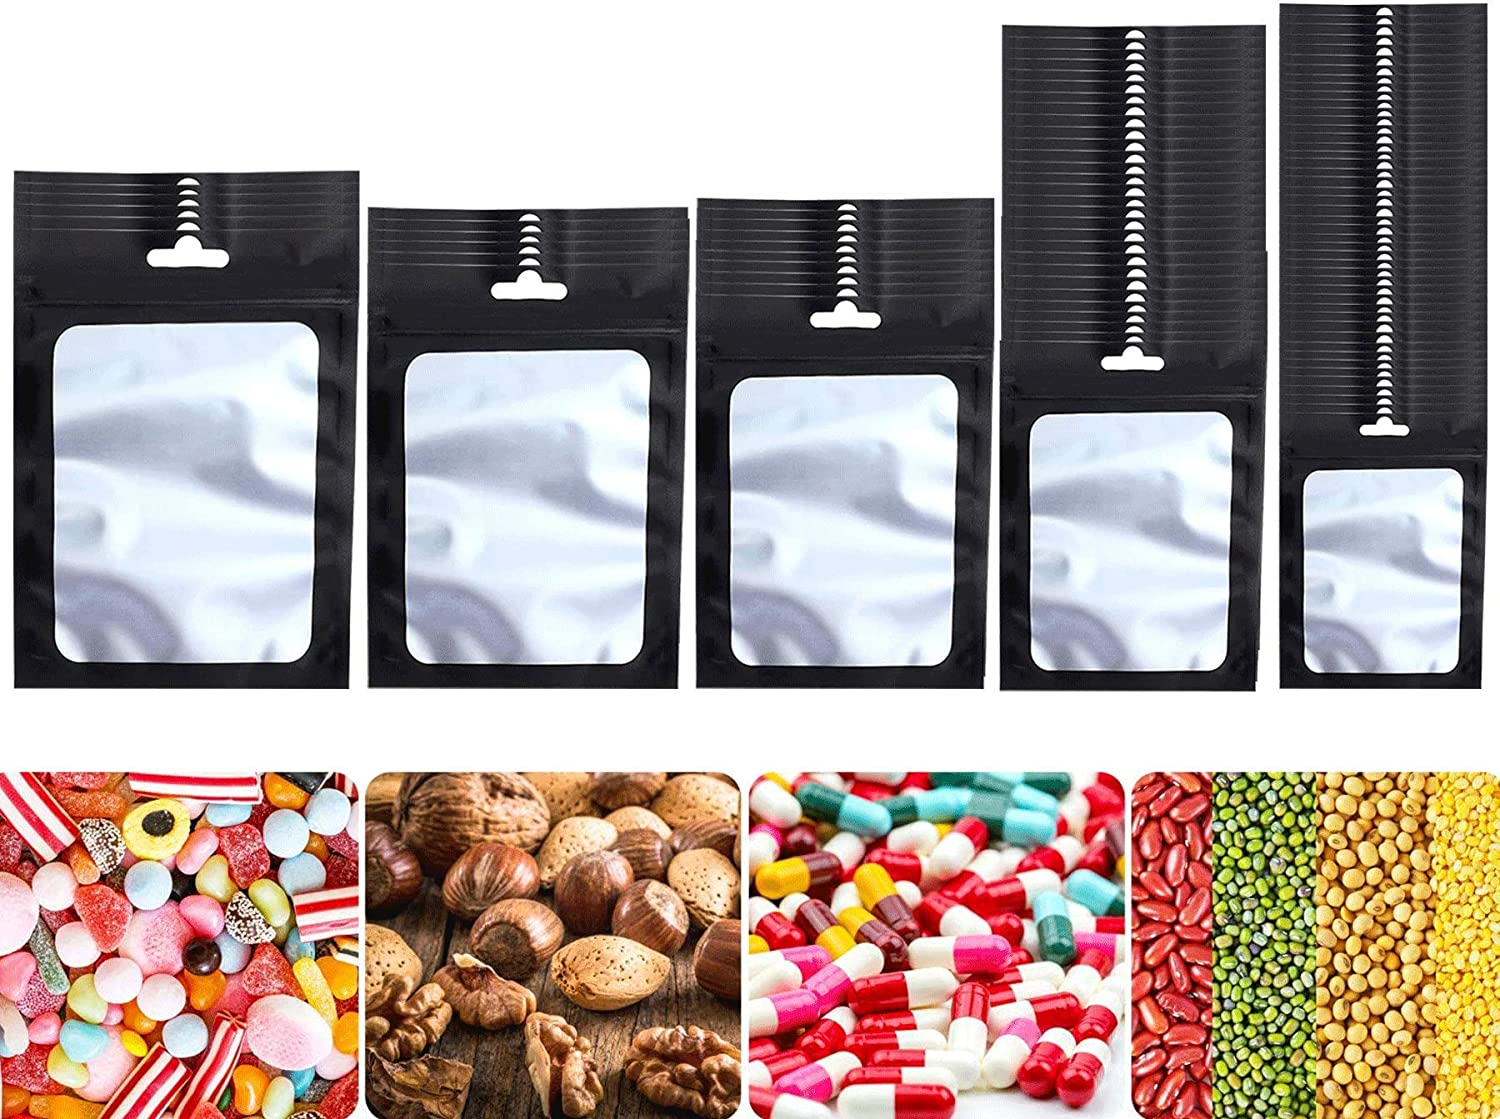 150 Pieces Resealable Mylar Bags with Clear Window Heat Seal Pouch Food Safe Storage Aluminum Foil 5 Different Sizes Smell Proof Storage Bags for Coffee Beans Candy Nuts Soap Sample (Black)